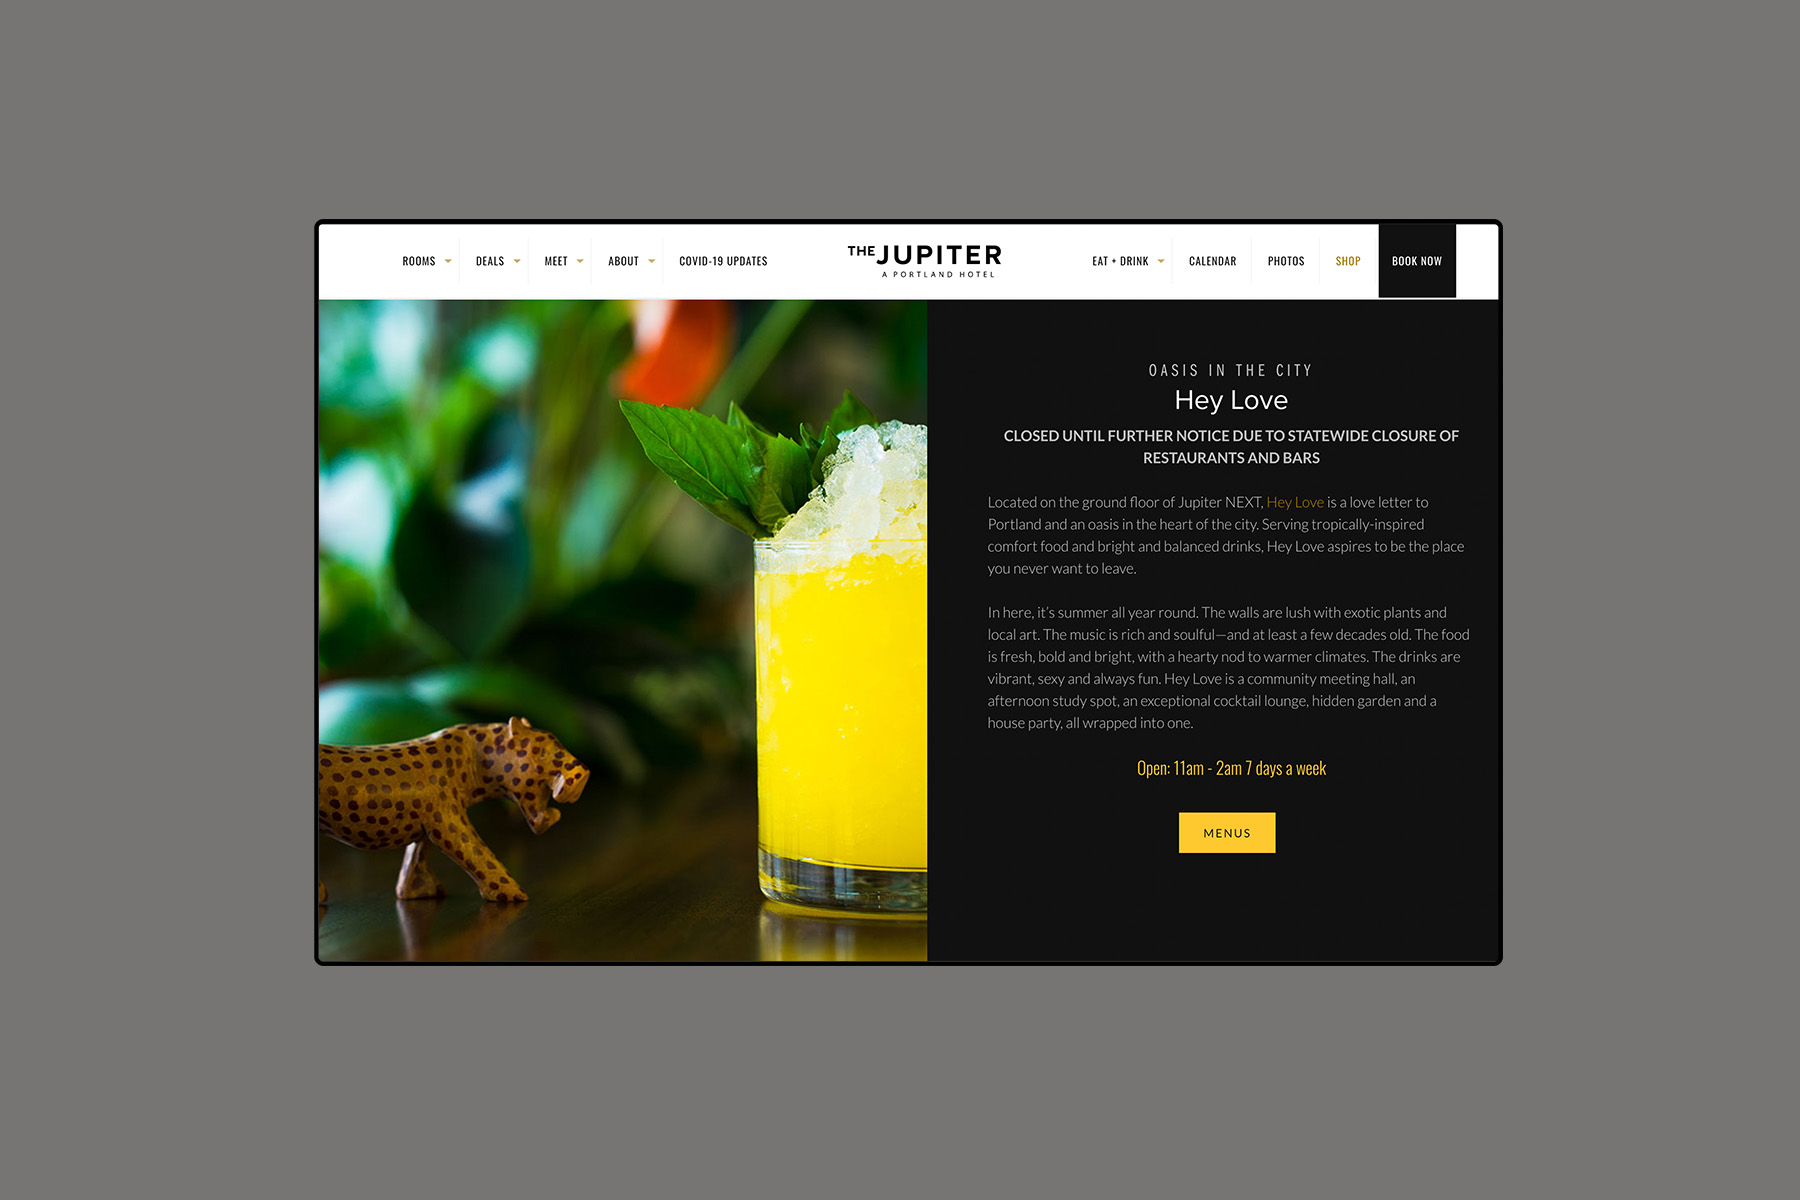 Web design for the jupiter hotel hey love page